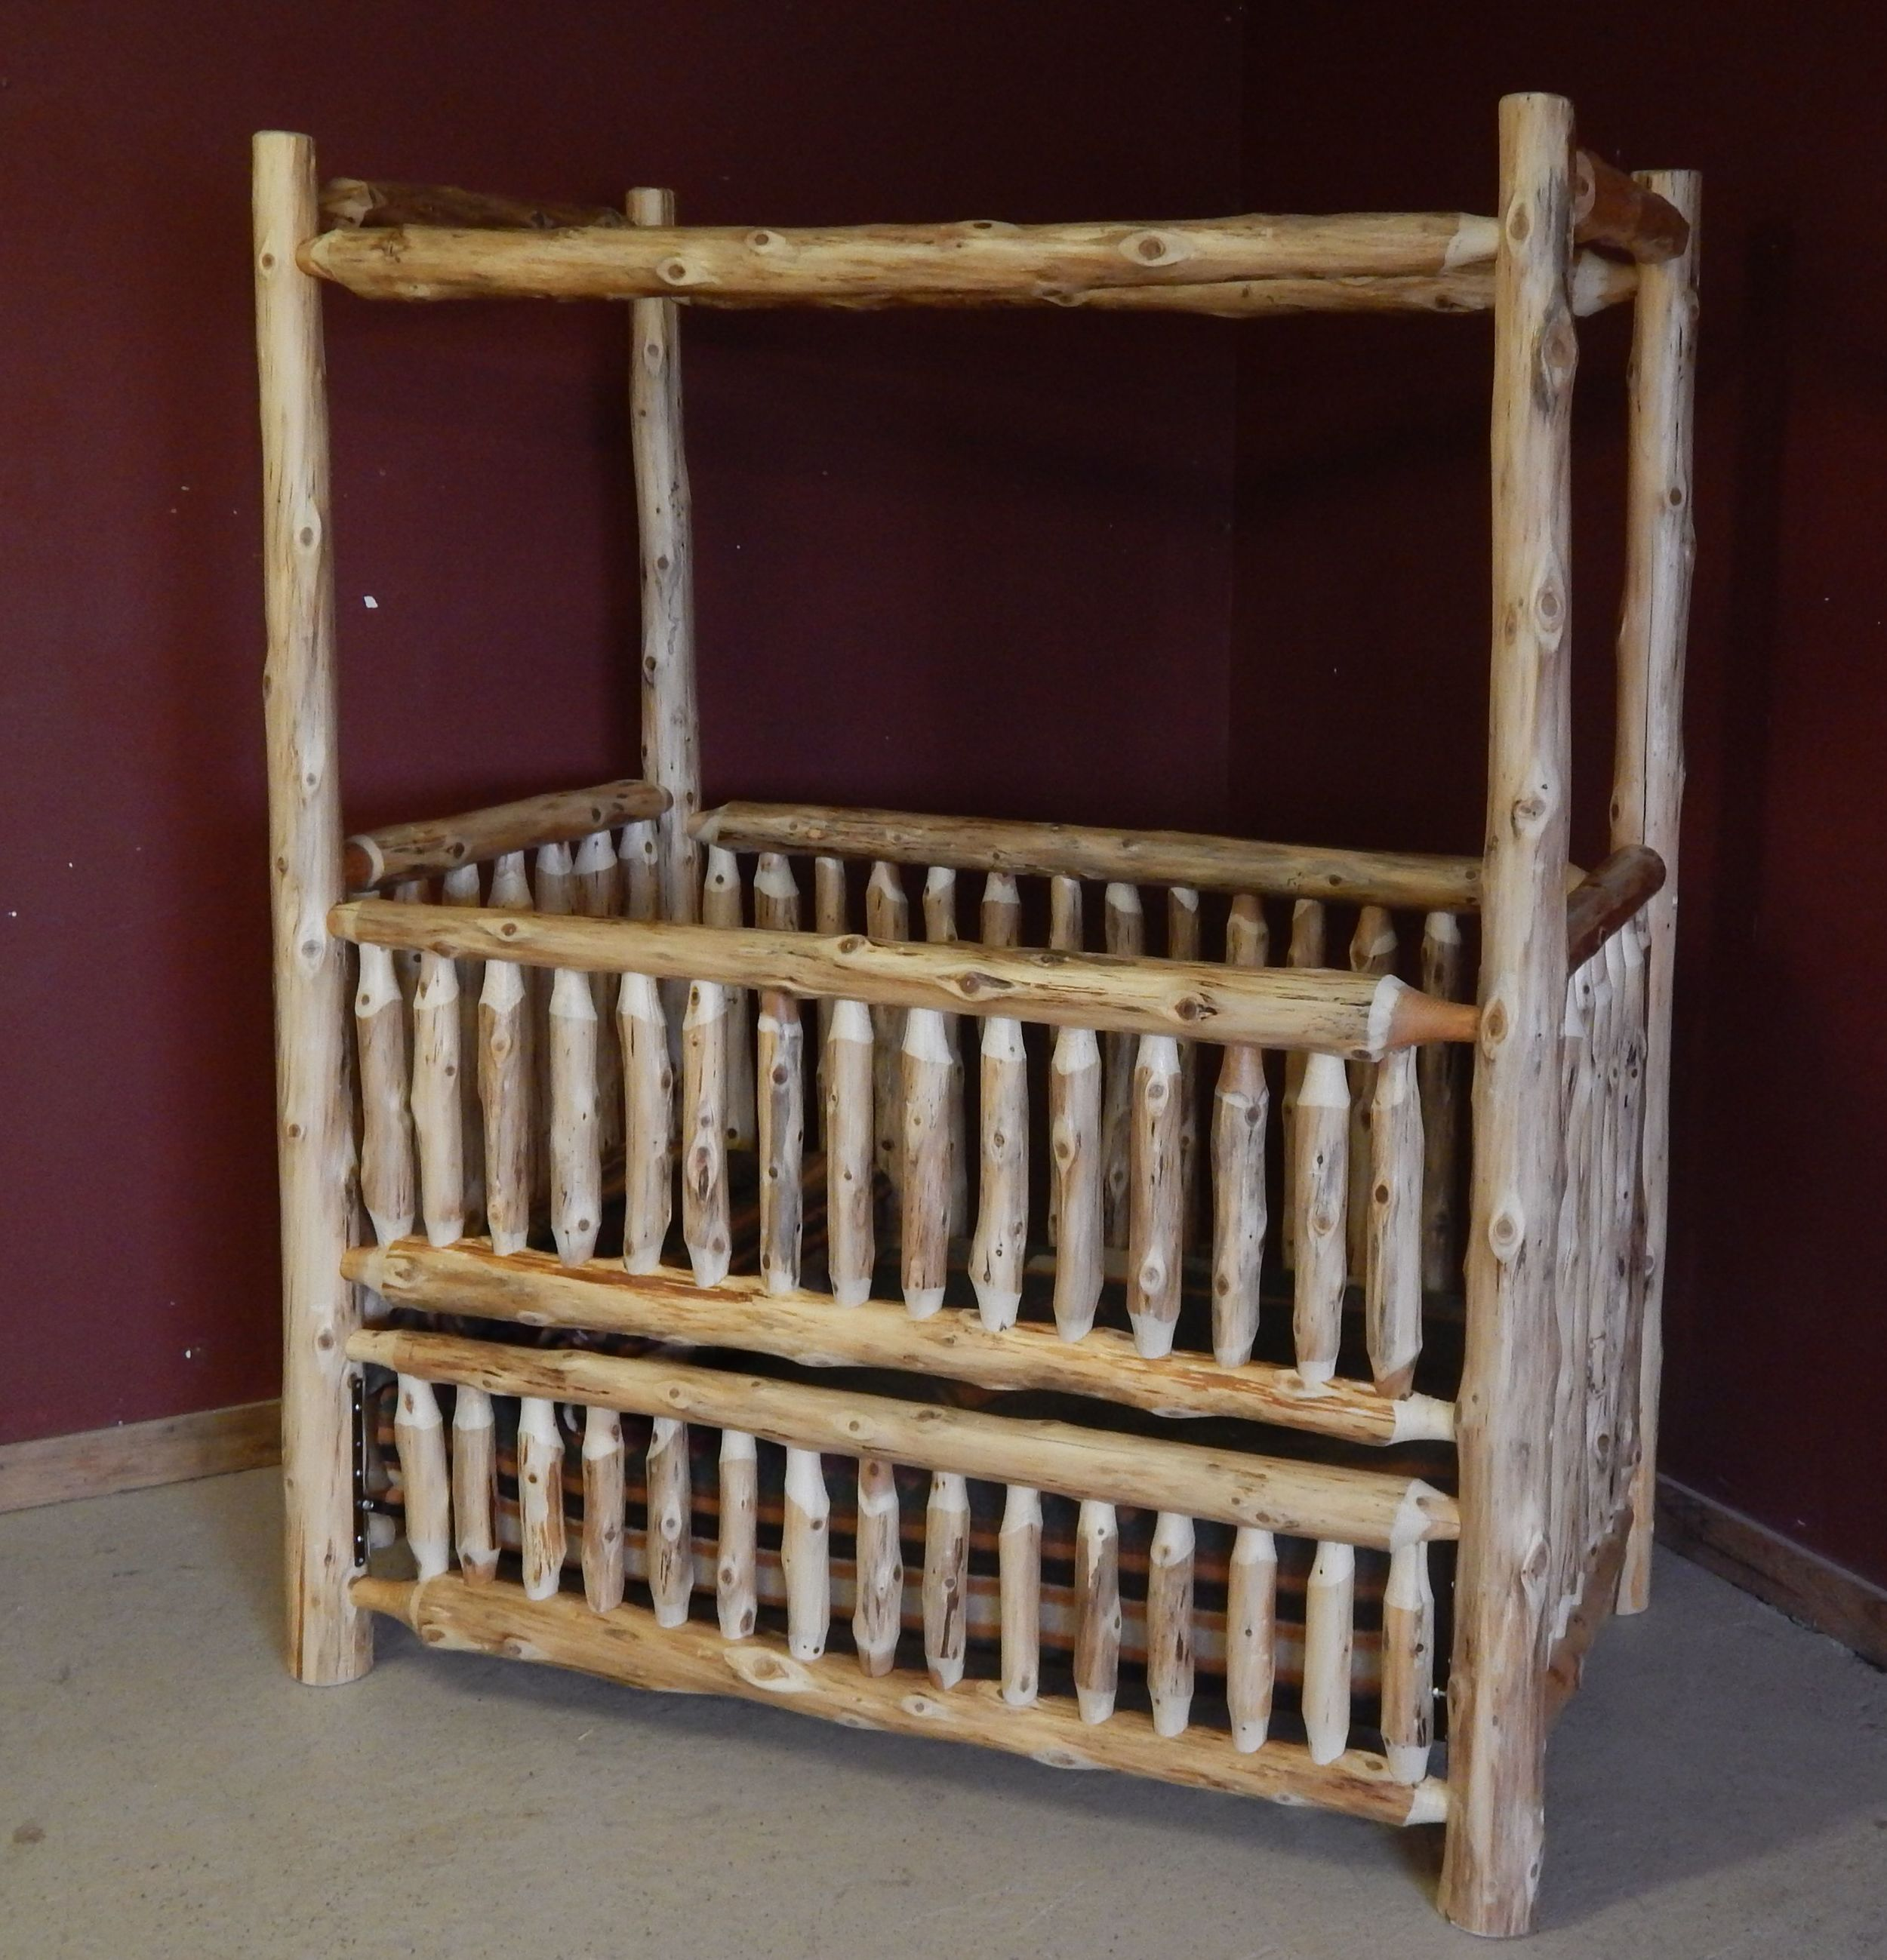 Log Canopy Baby Crib converts to toddler bed/full bed